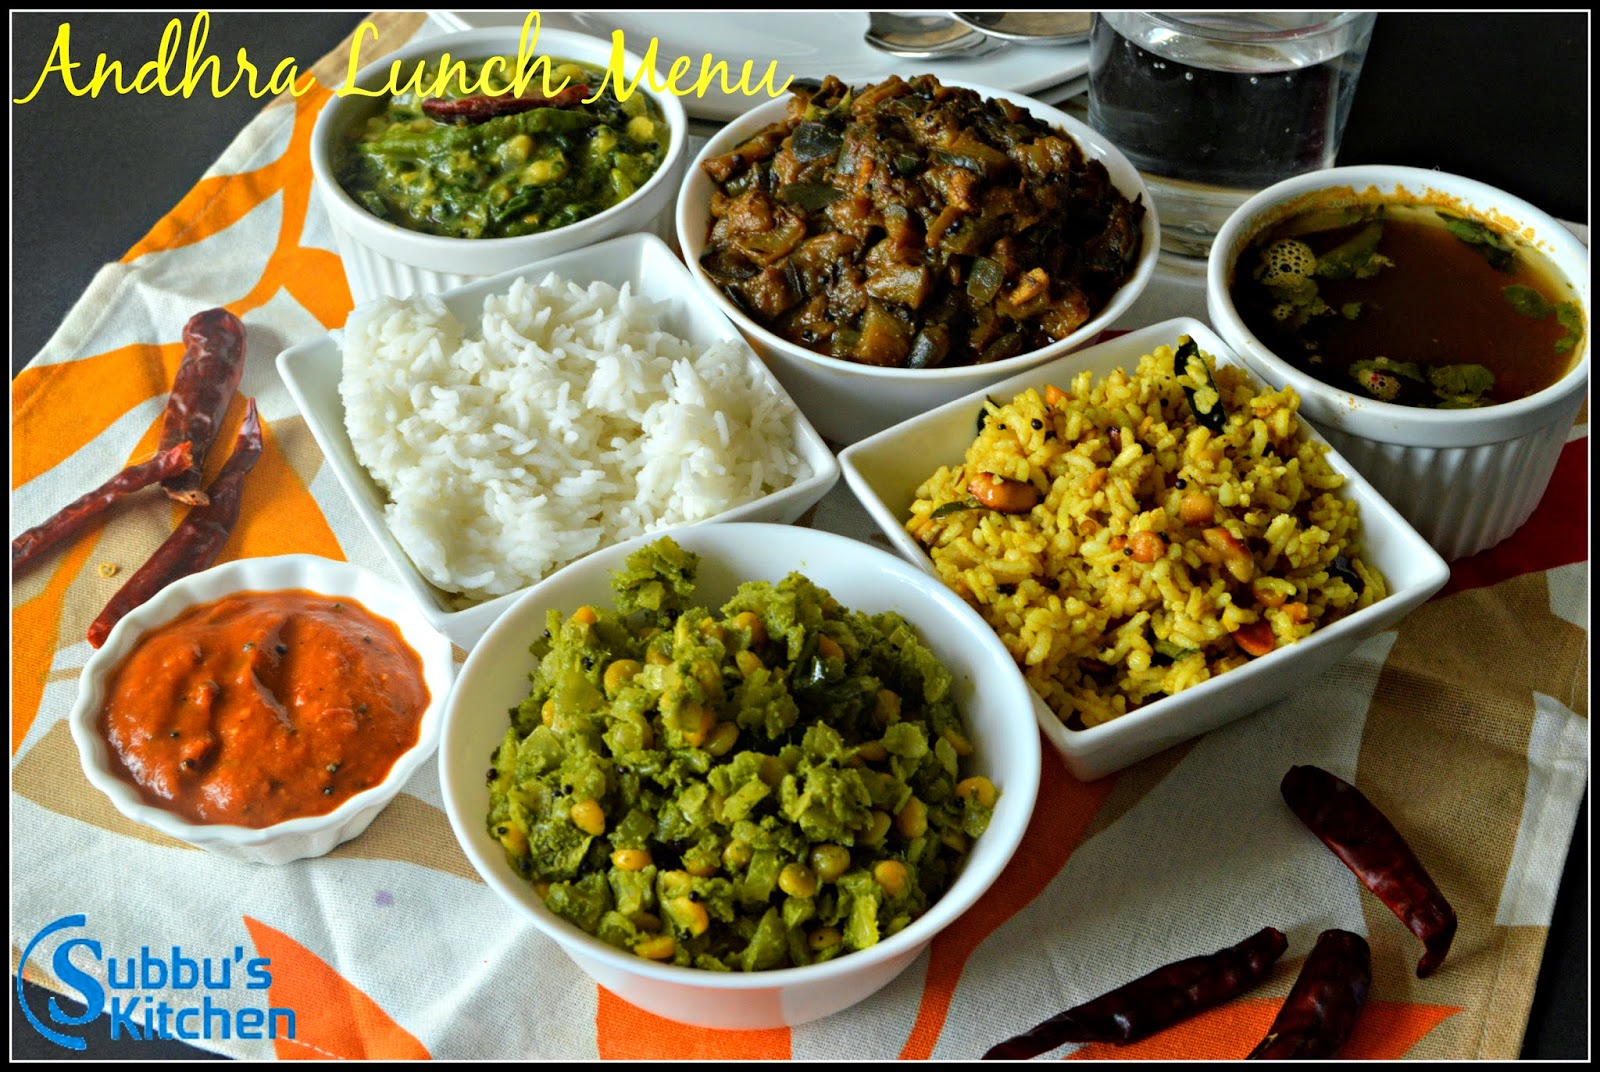 South Indian Lunch Menu 7 Andhra